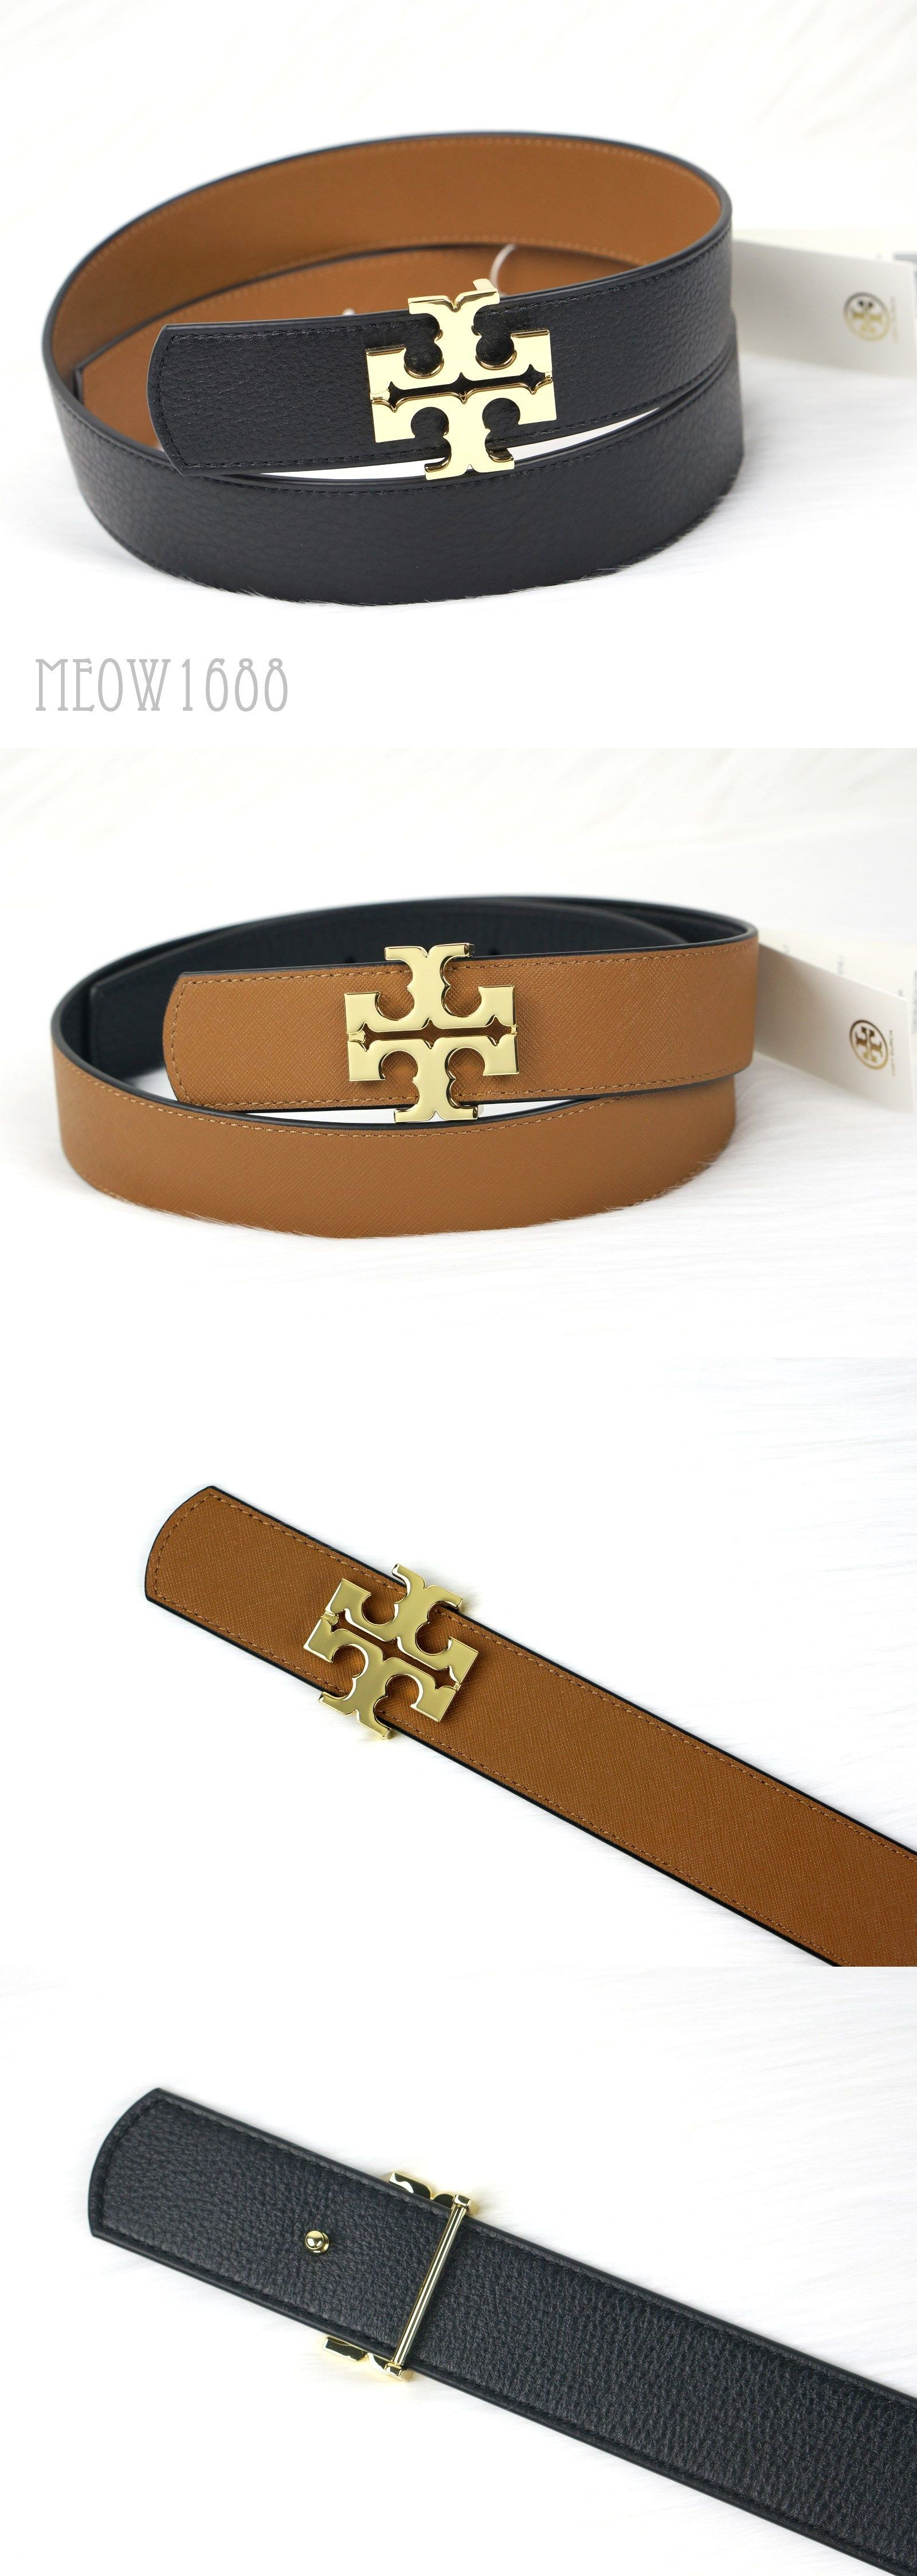 dcd665e58ee2 Belts 3003  New Tory Burch Reversible Logo Belt 1.5 Black Brown Tiger S Eye  Leather S M L -  BUY IT NOW ONLY   139.95 on eBay!